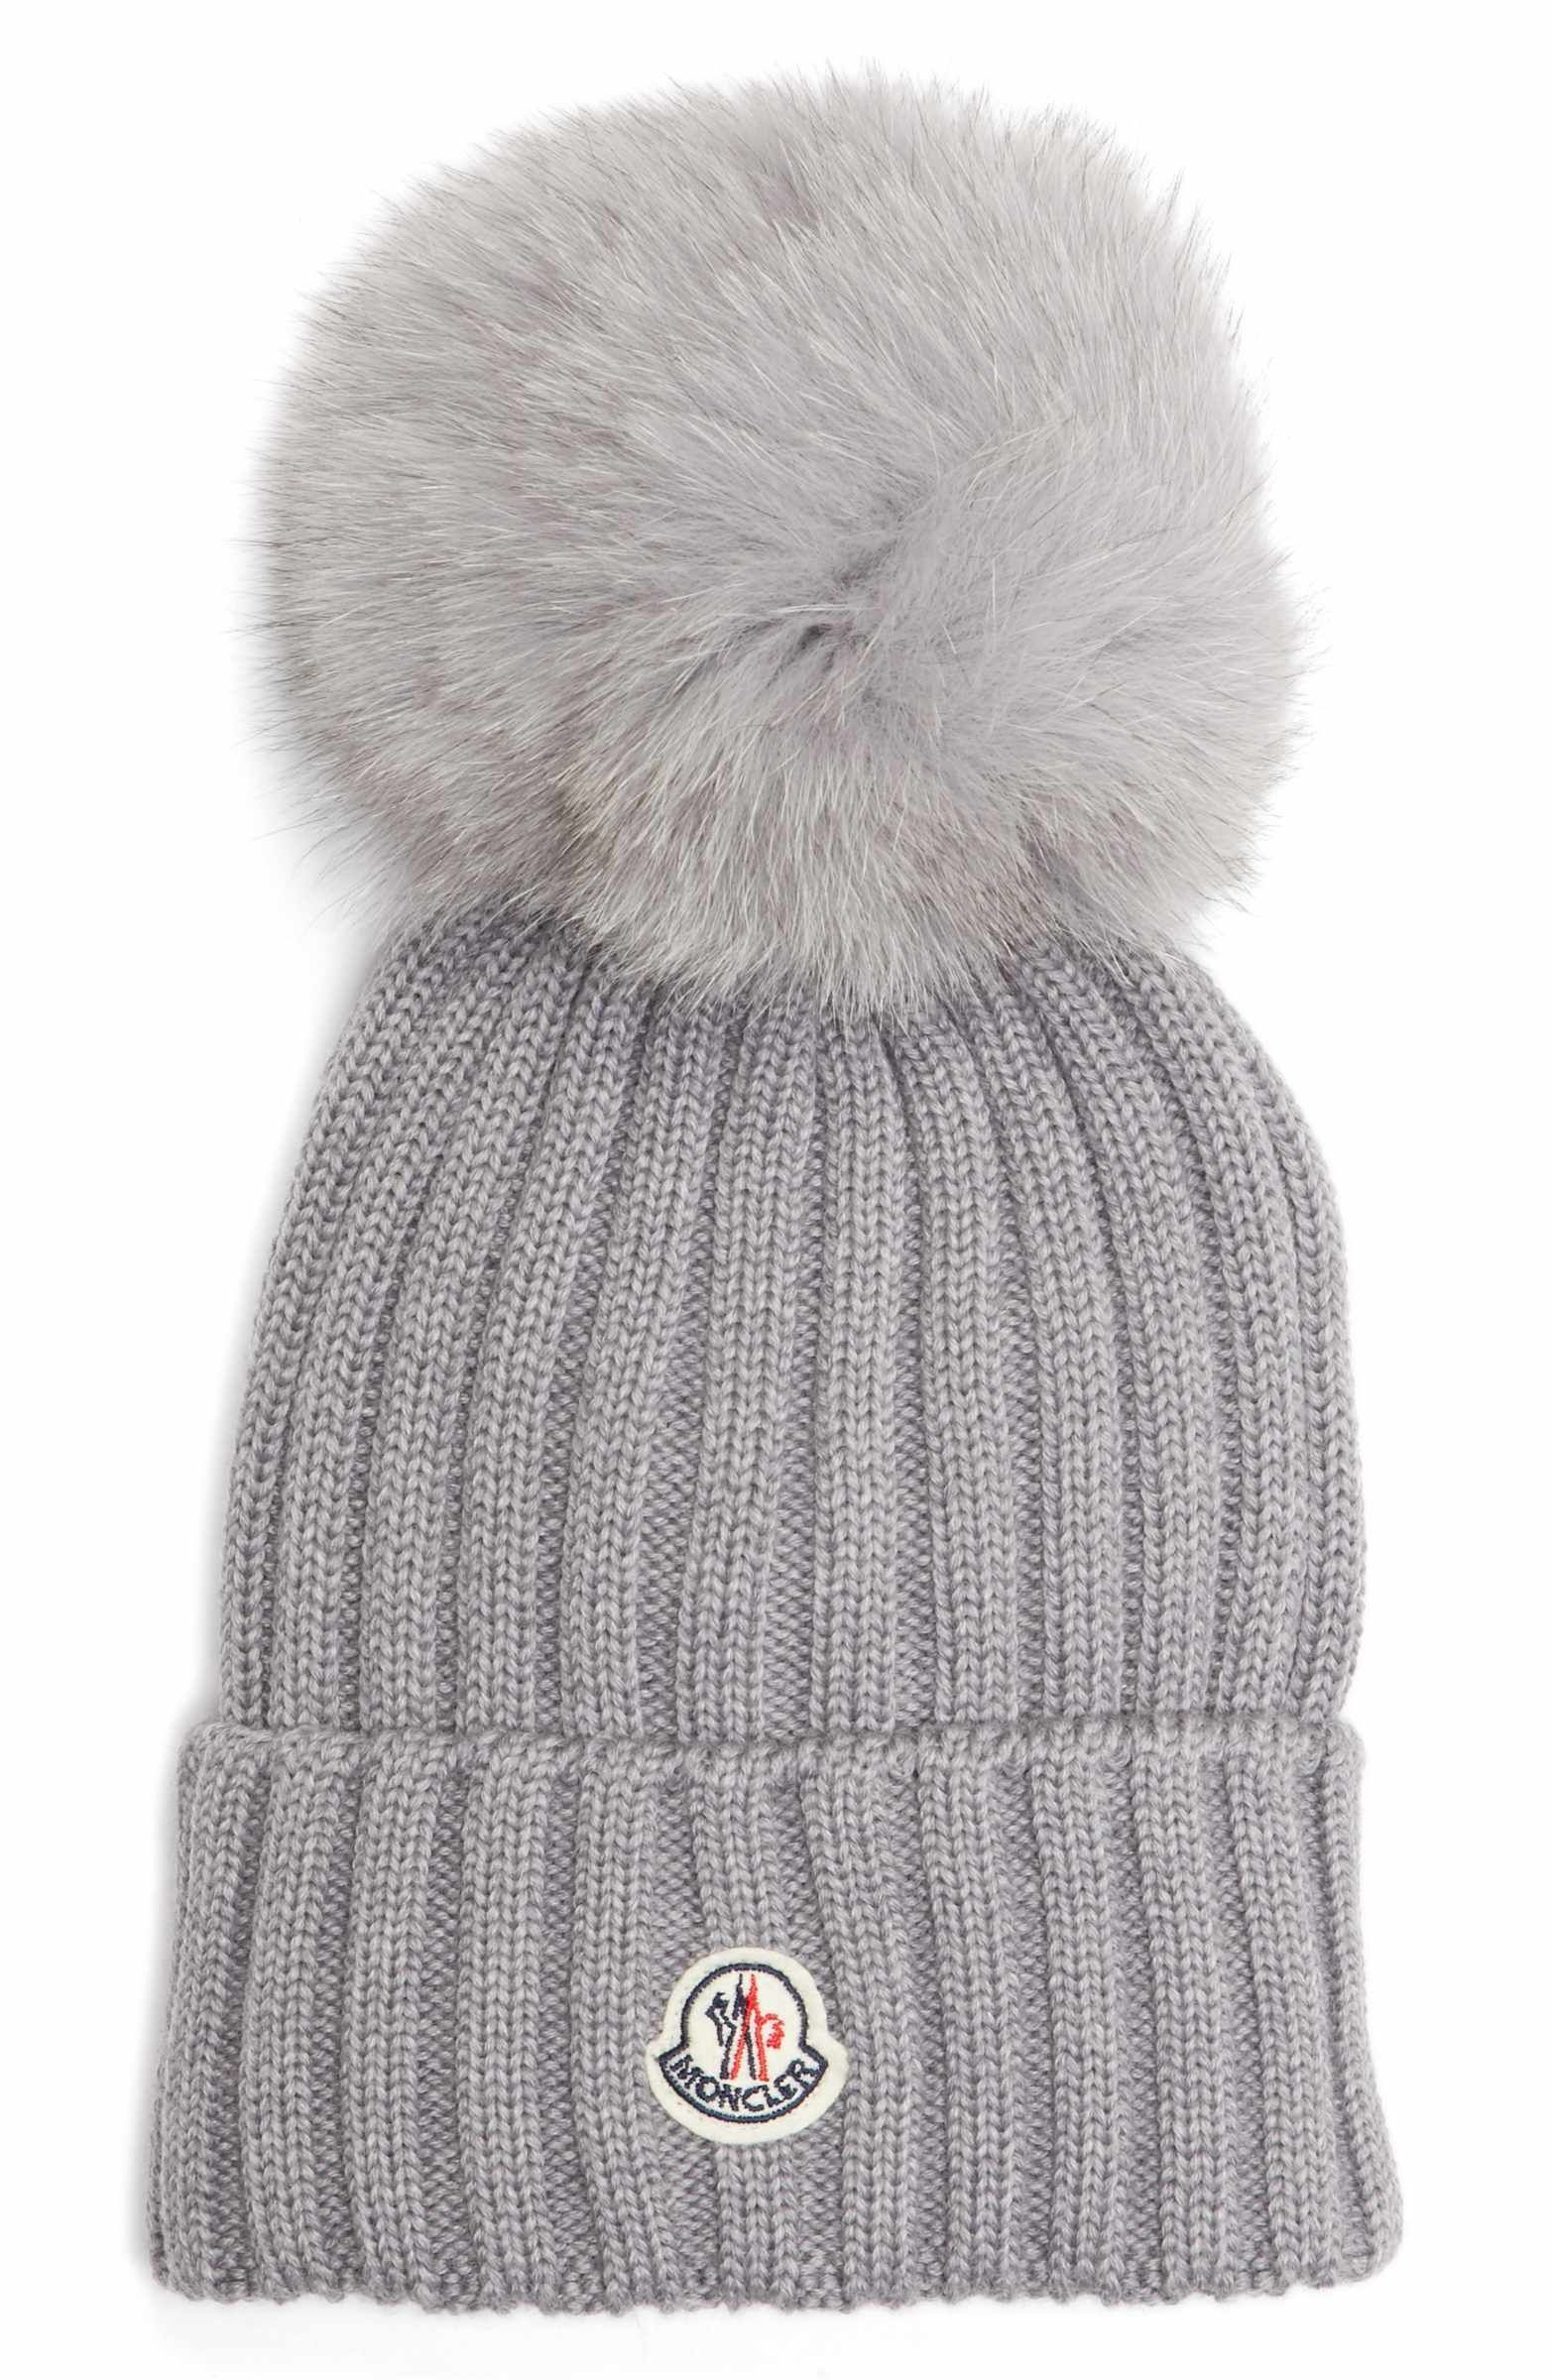 a92a4d5a90a Main Image - Moncler Genuine Fox Fur Pom Wool Beanie